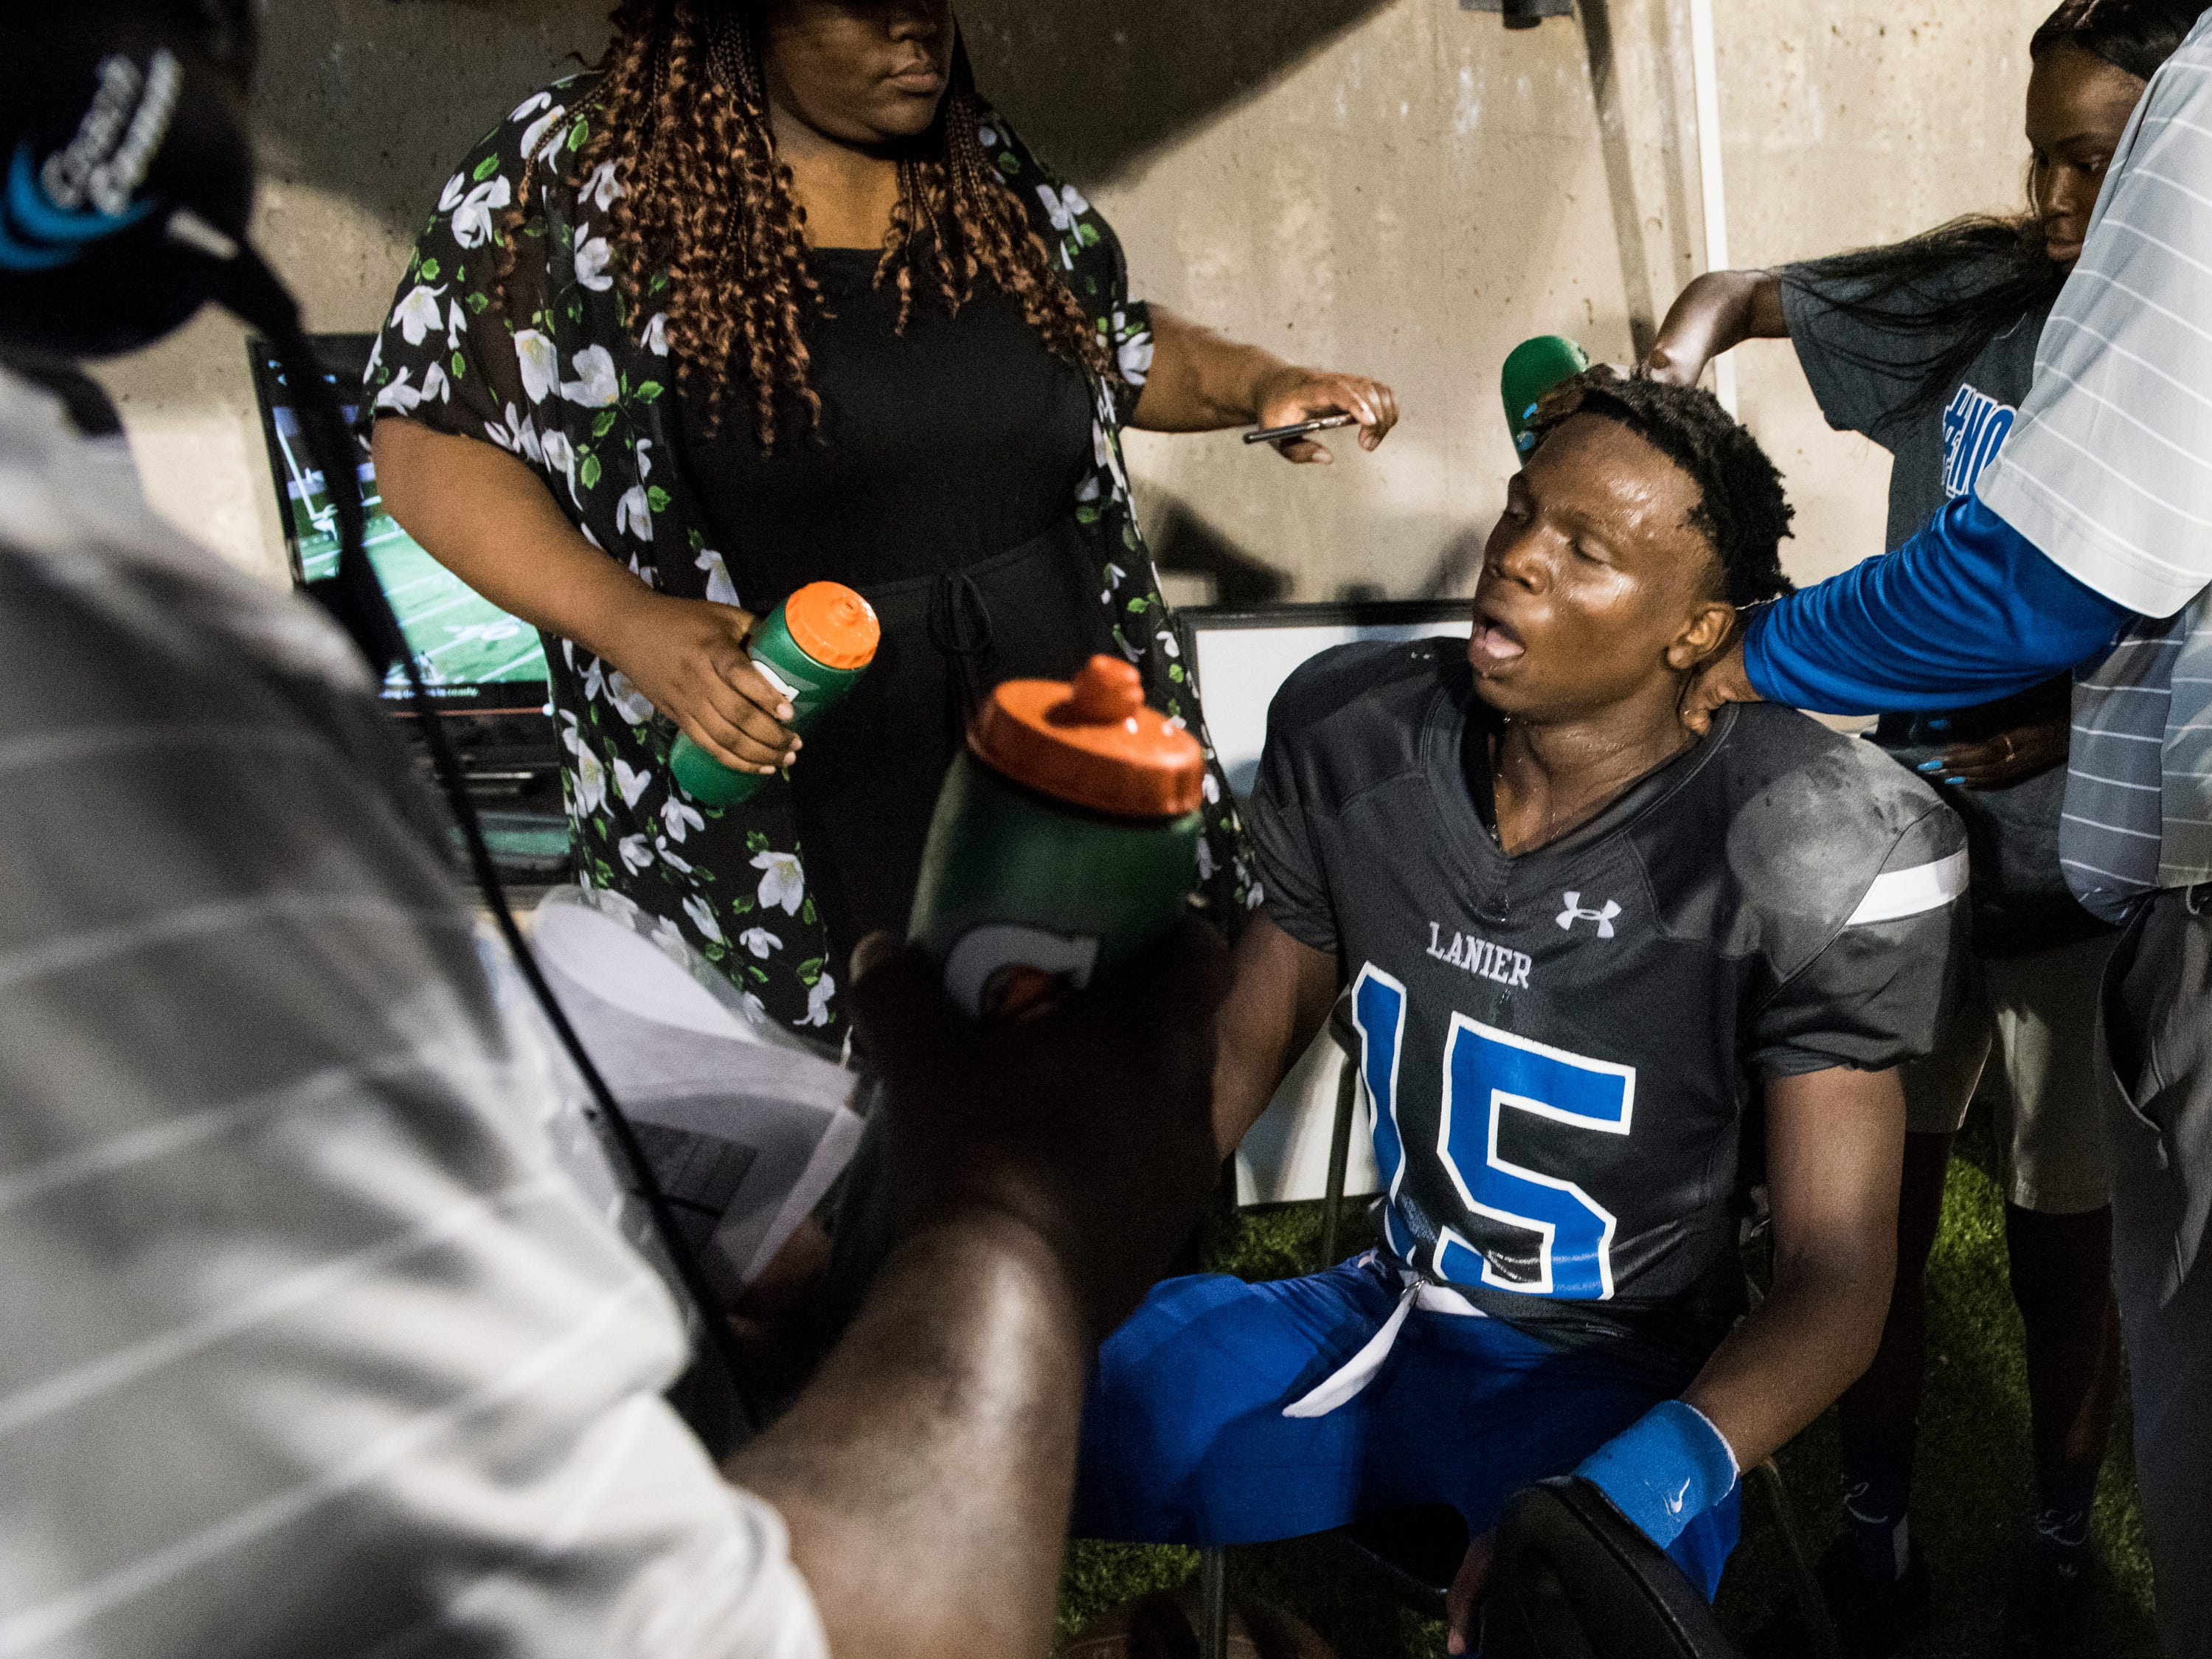 Lanier's Jacory Merritt (15) takes a much needed break after scoring a touchdown against Park Crossing at Cramton Bowl in Montgomery, Ala., on Friday, Sept. 21, 2018. Lanier defeated Park Crossing 35-28.